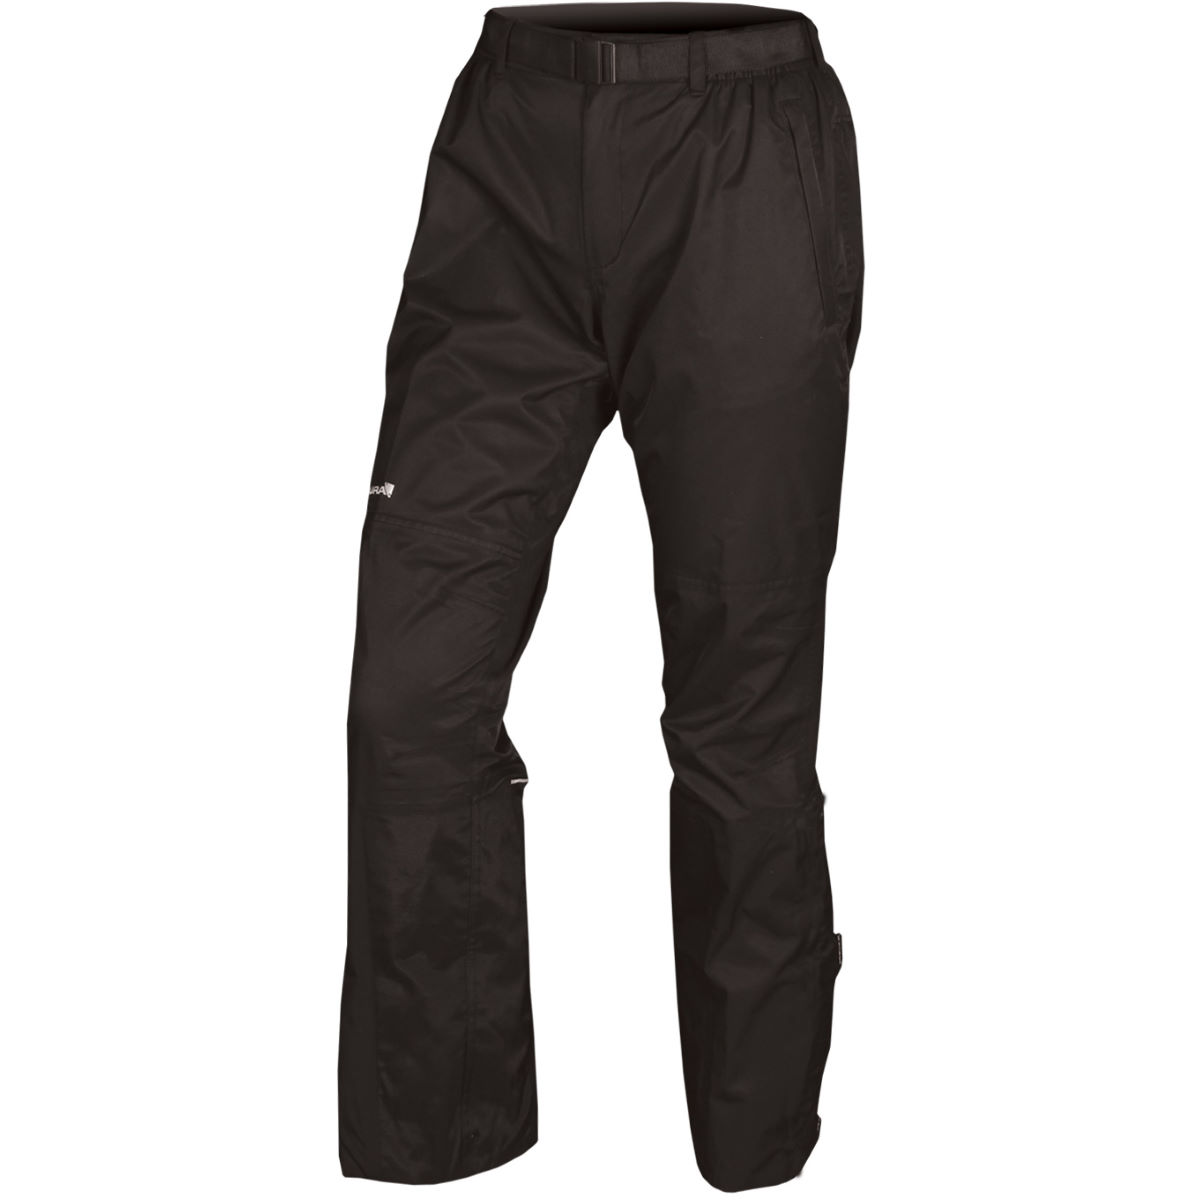 Endura Womens Gridlock II Trouser   Waterproof Cycling Trousers